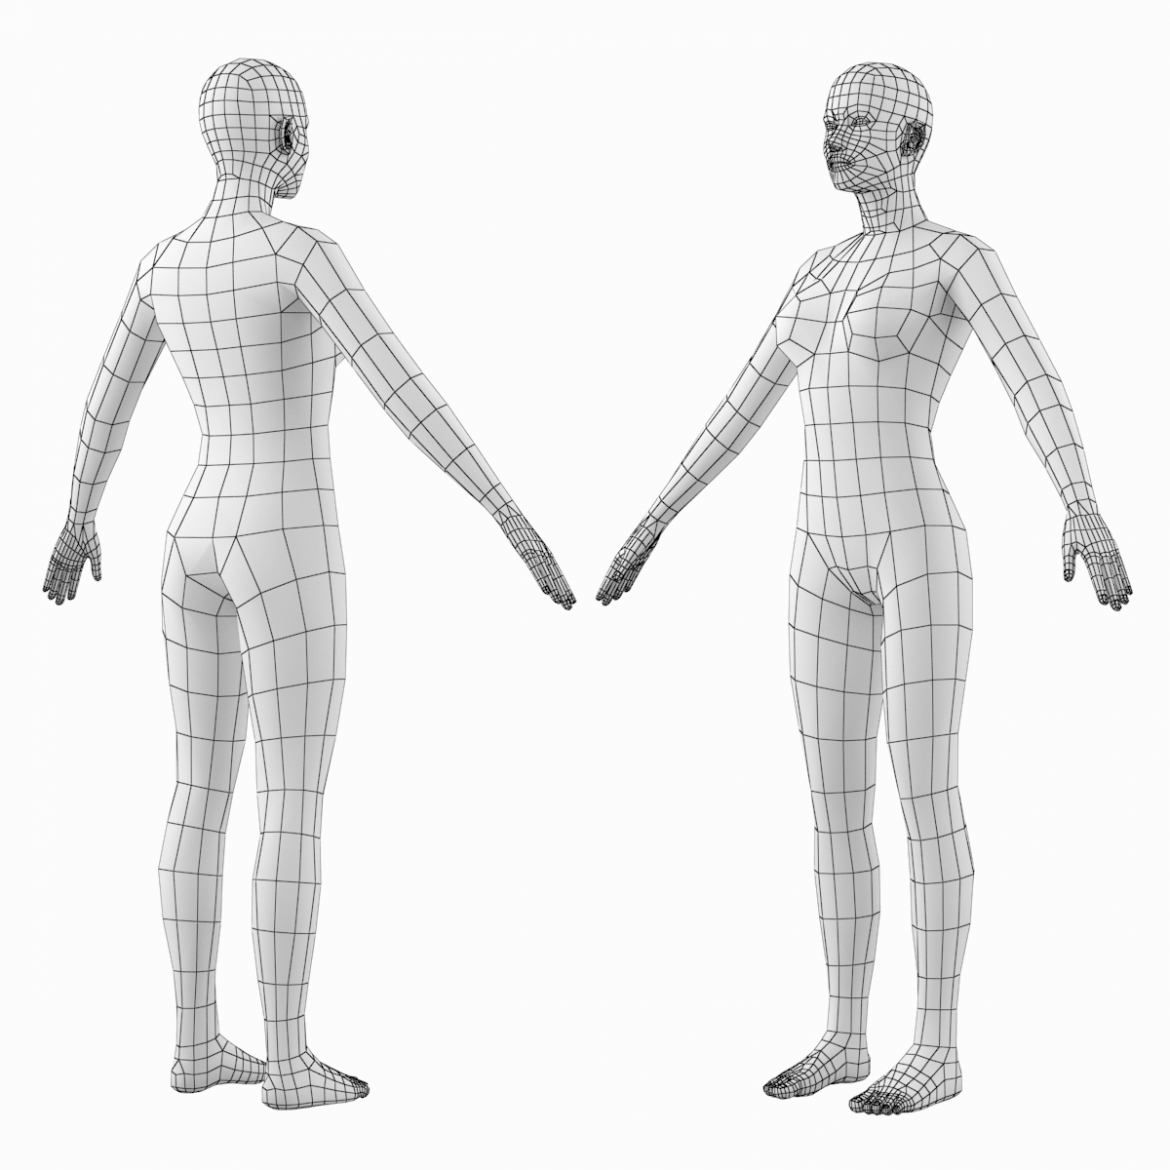 female base mesh natural proportions in a-pose 3d model 3ds max dxf dwg fbx c4d dae ma mb  obj 301364